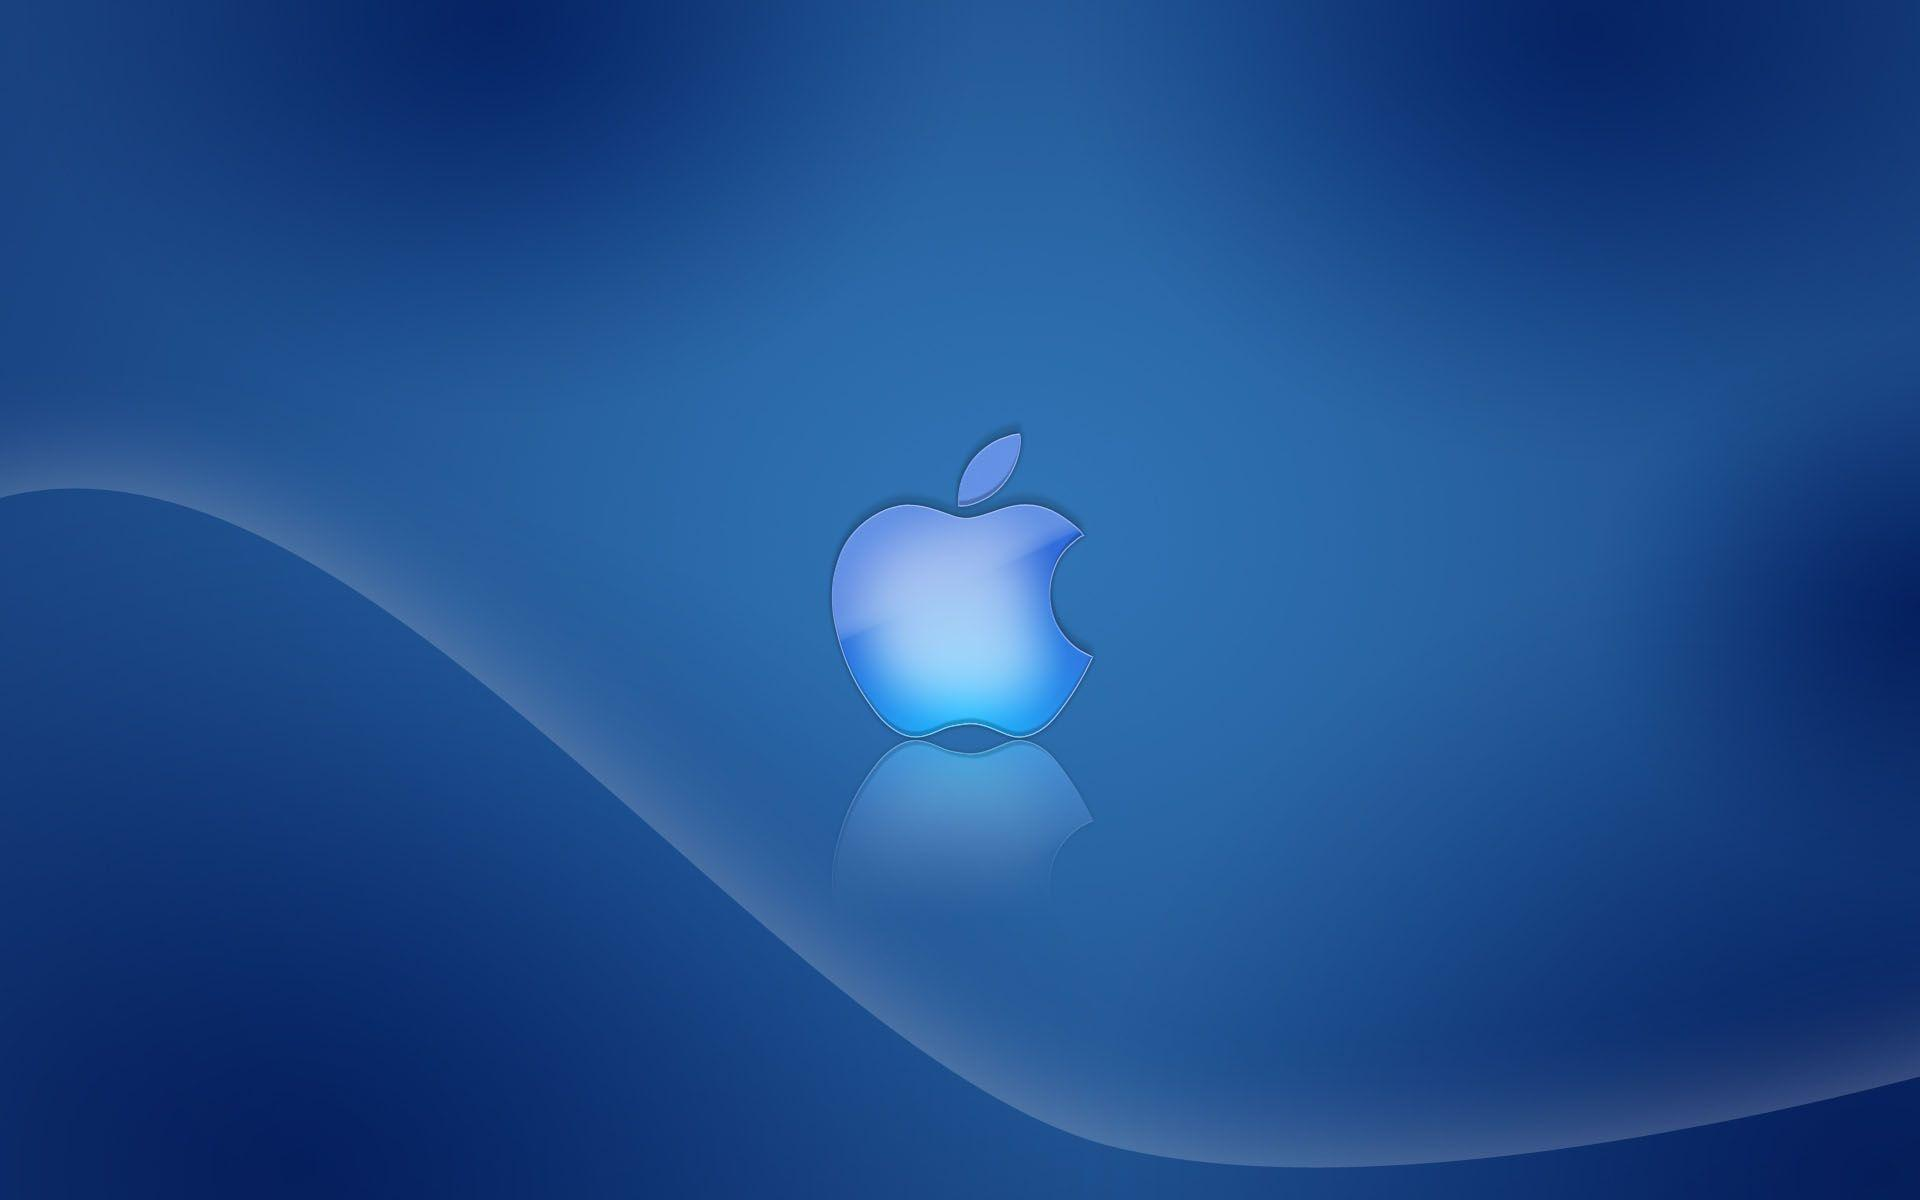 imac wallpapers wallpaper cave